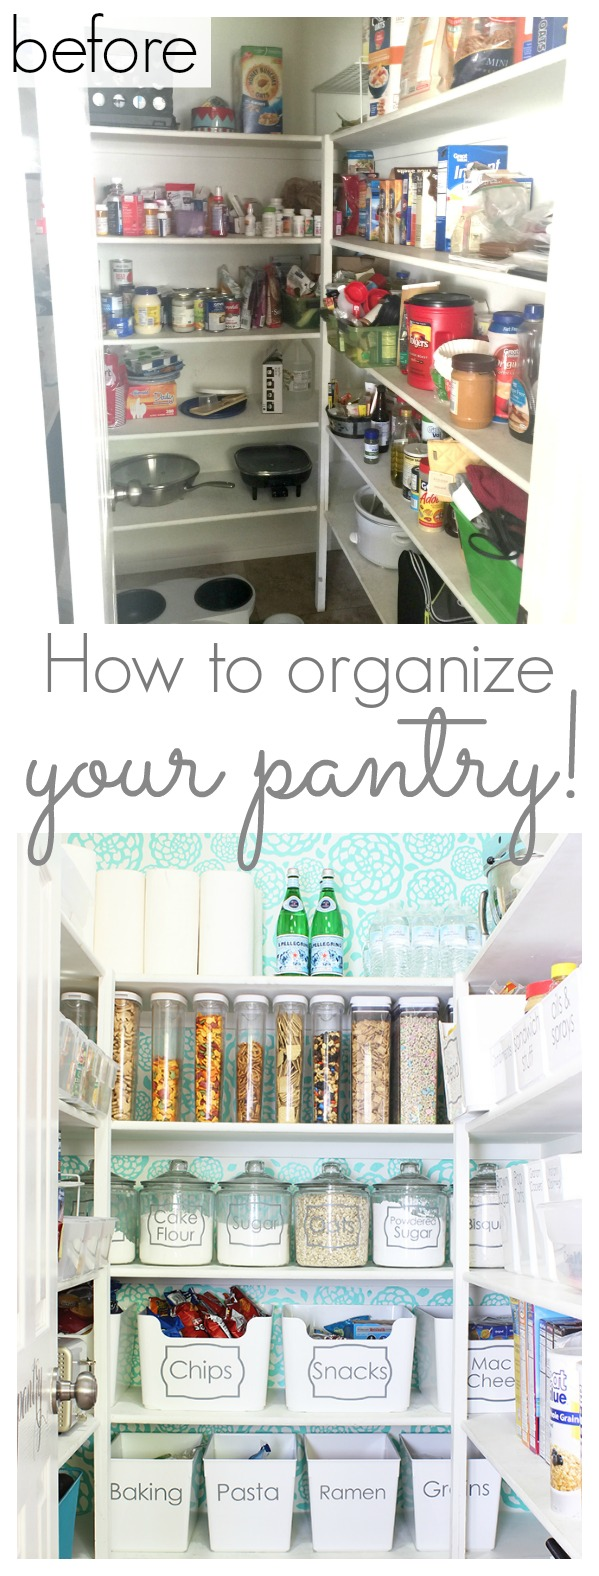 How to organize your pantry - www.classyclutter.net